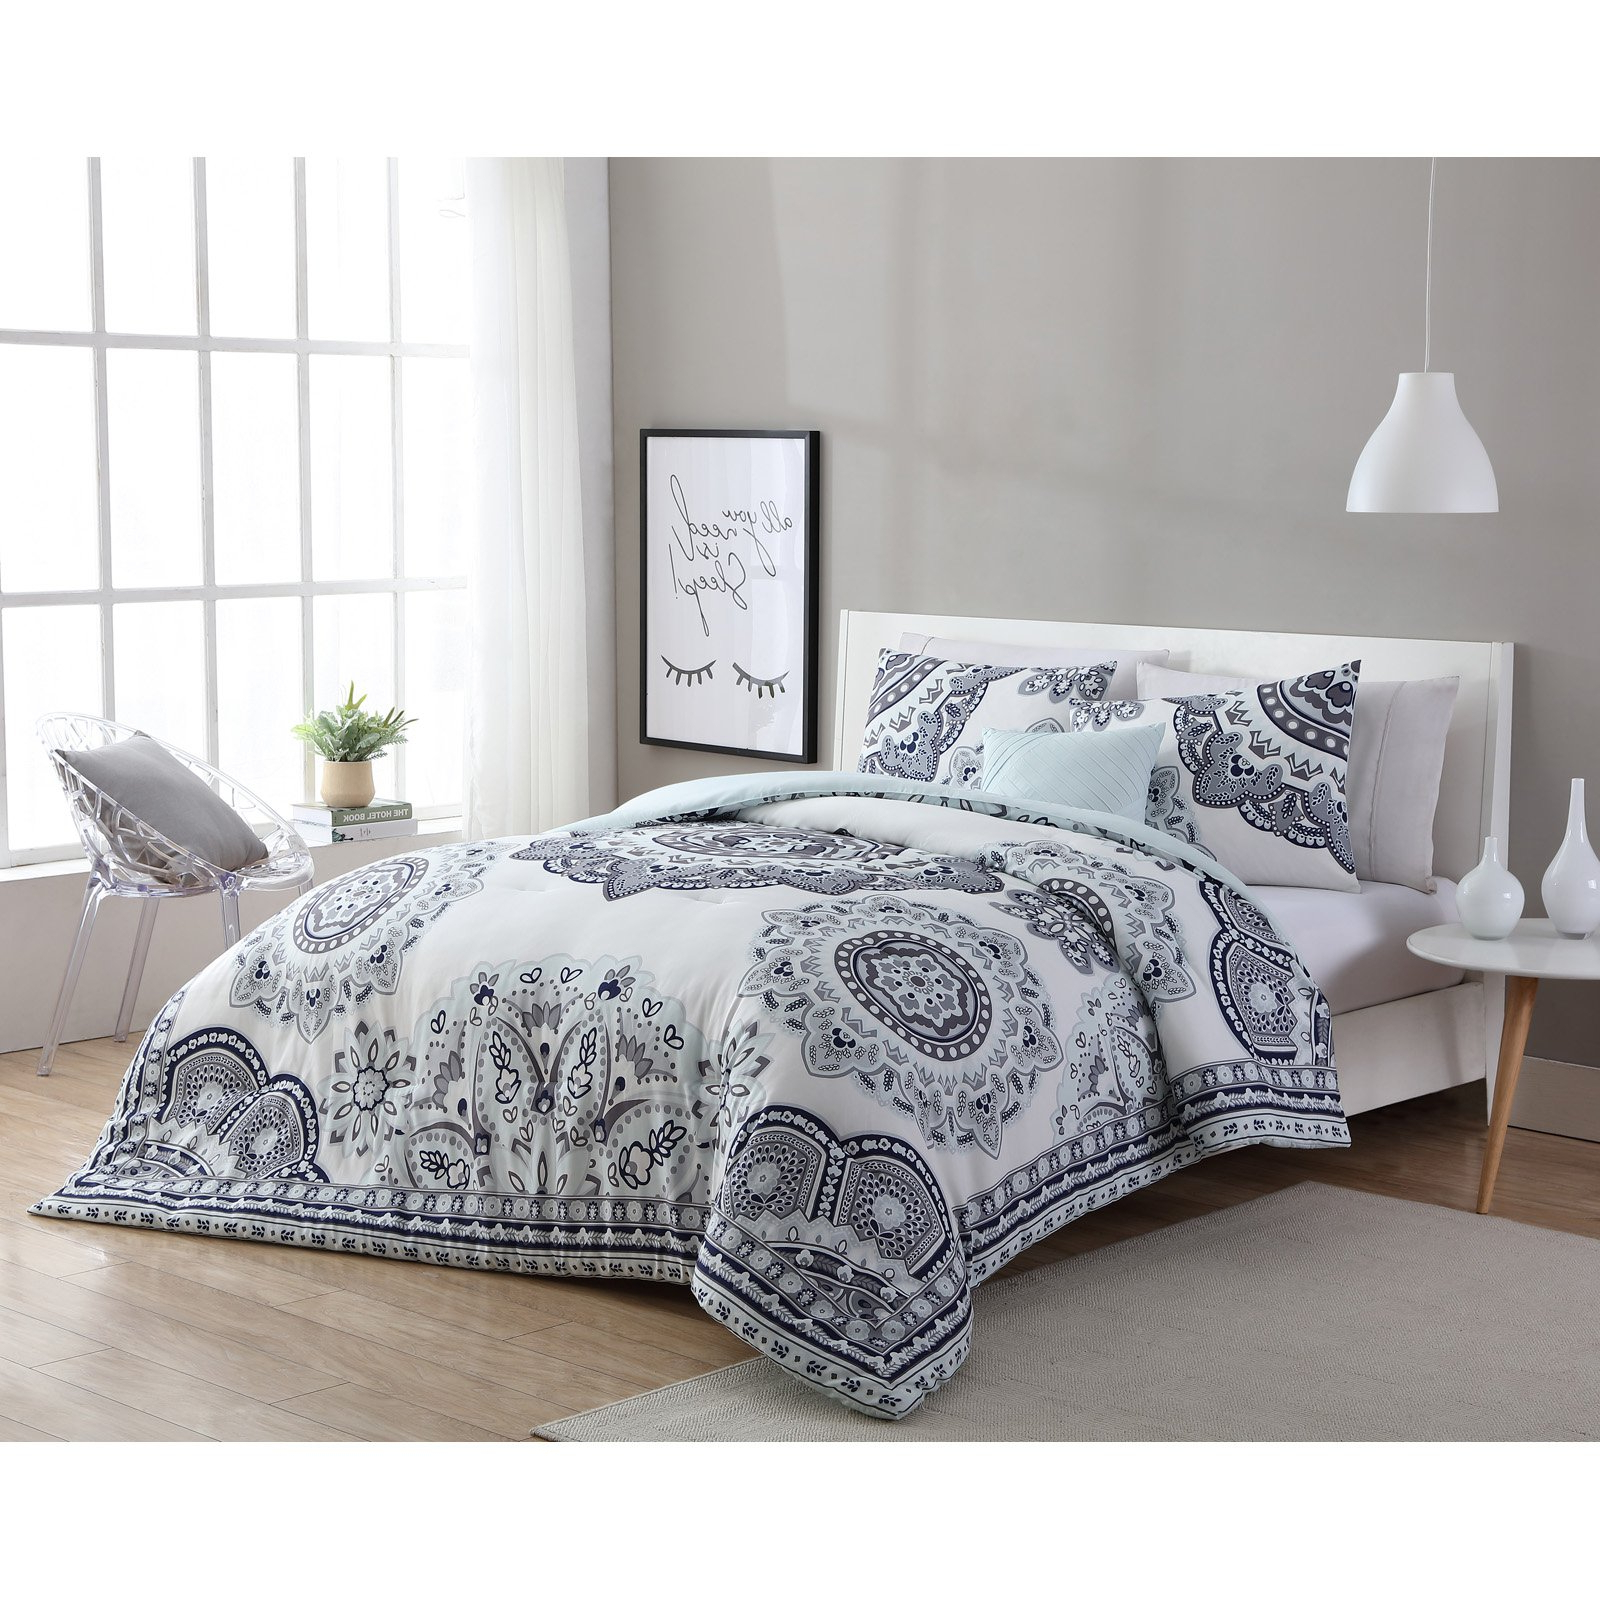 Vcny Home Grey/mint Kaya 3/4 Piece Comforter Bedding Set, Shams Included For Popular Kaya 3 Piece Dining Sets (View 19 of 20)